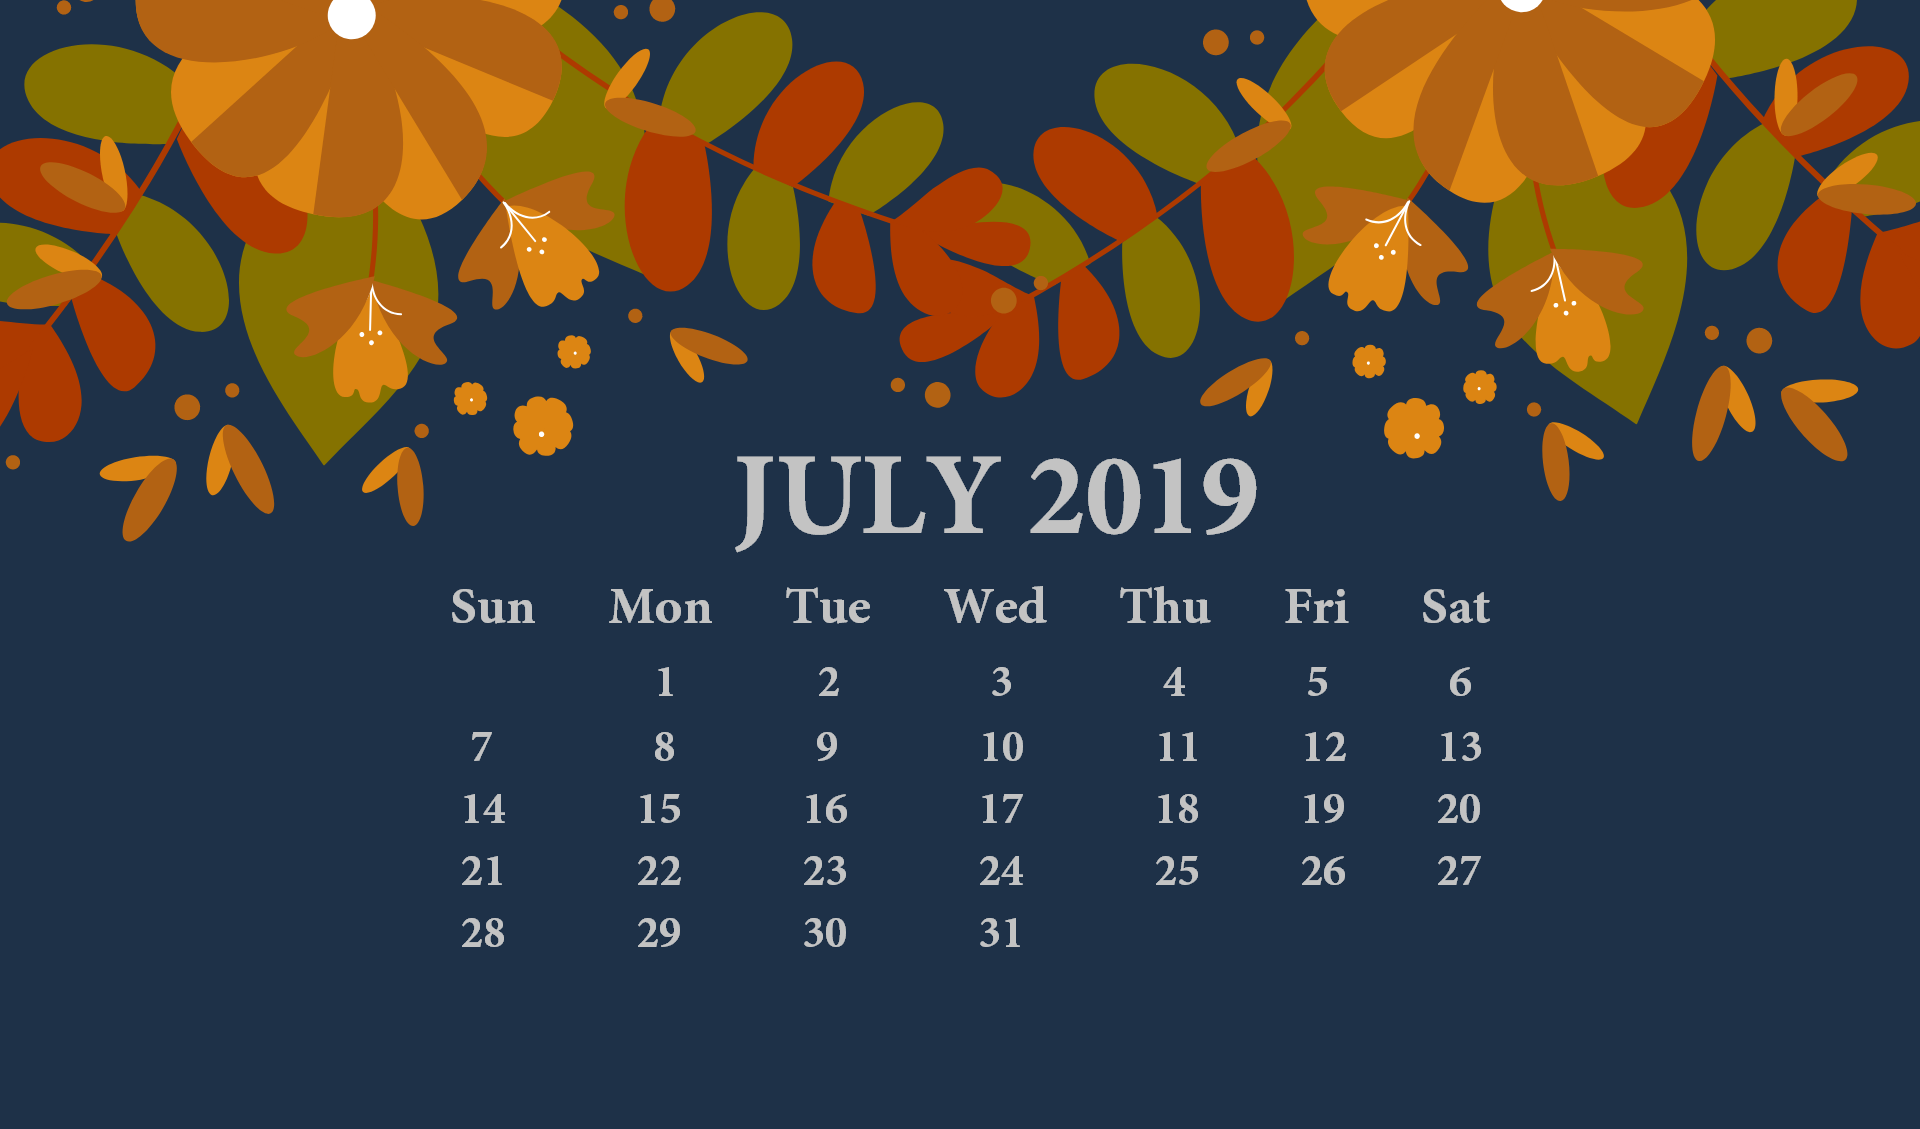 2019 Desktop Calendar Wallpaper Max Calendars 1920x1129